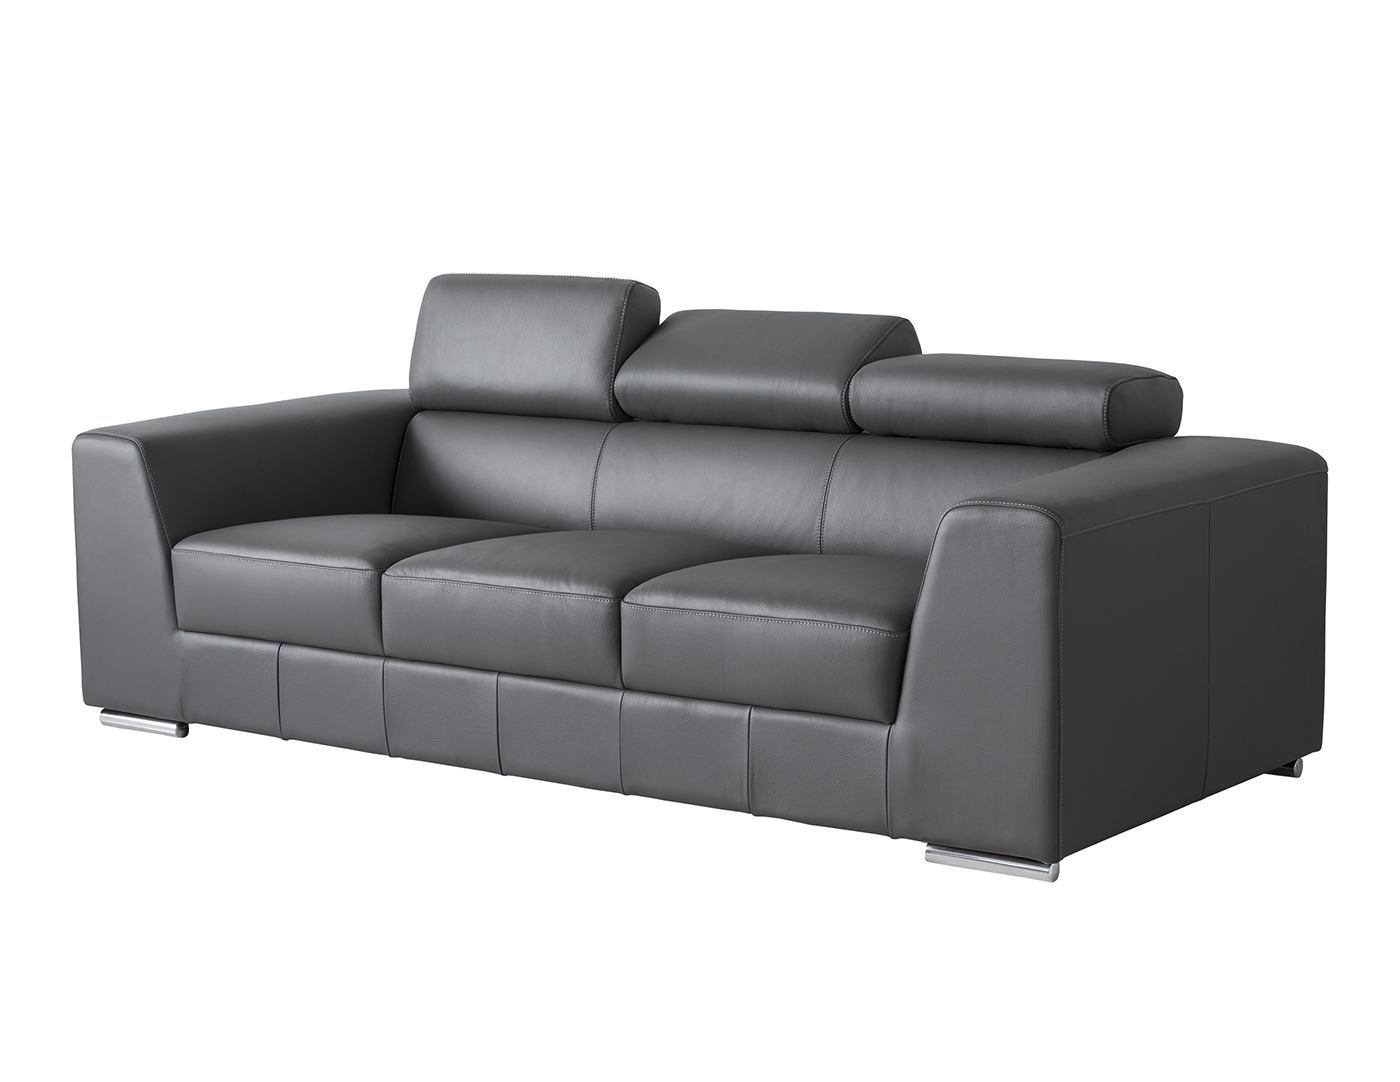 Davenport Double Sleeper Sofa/ Daybed Charcoal Weave with ...